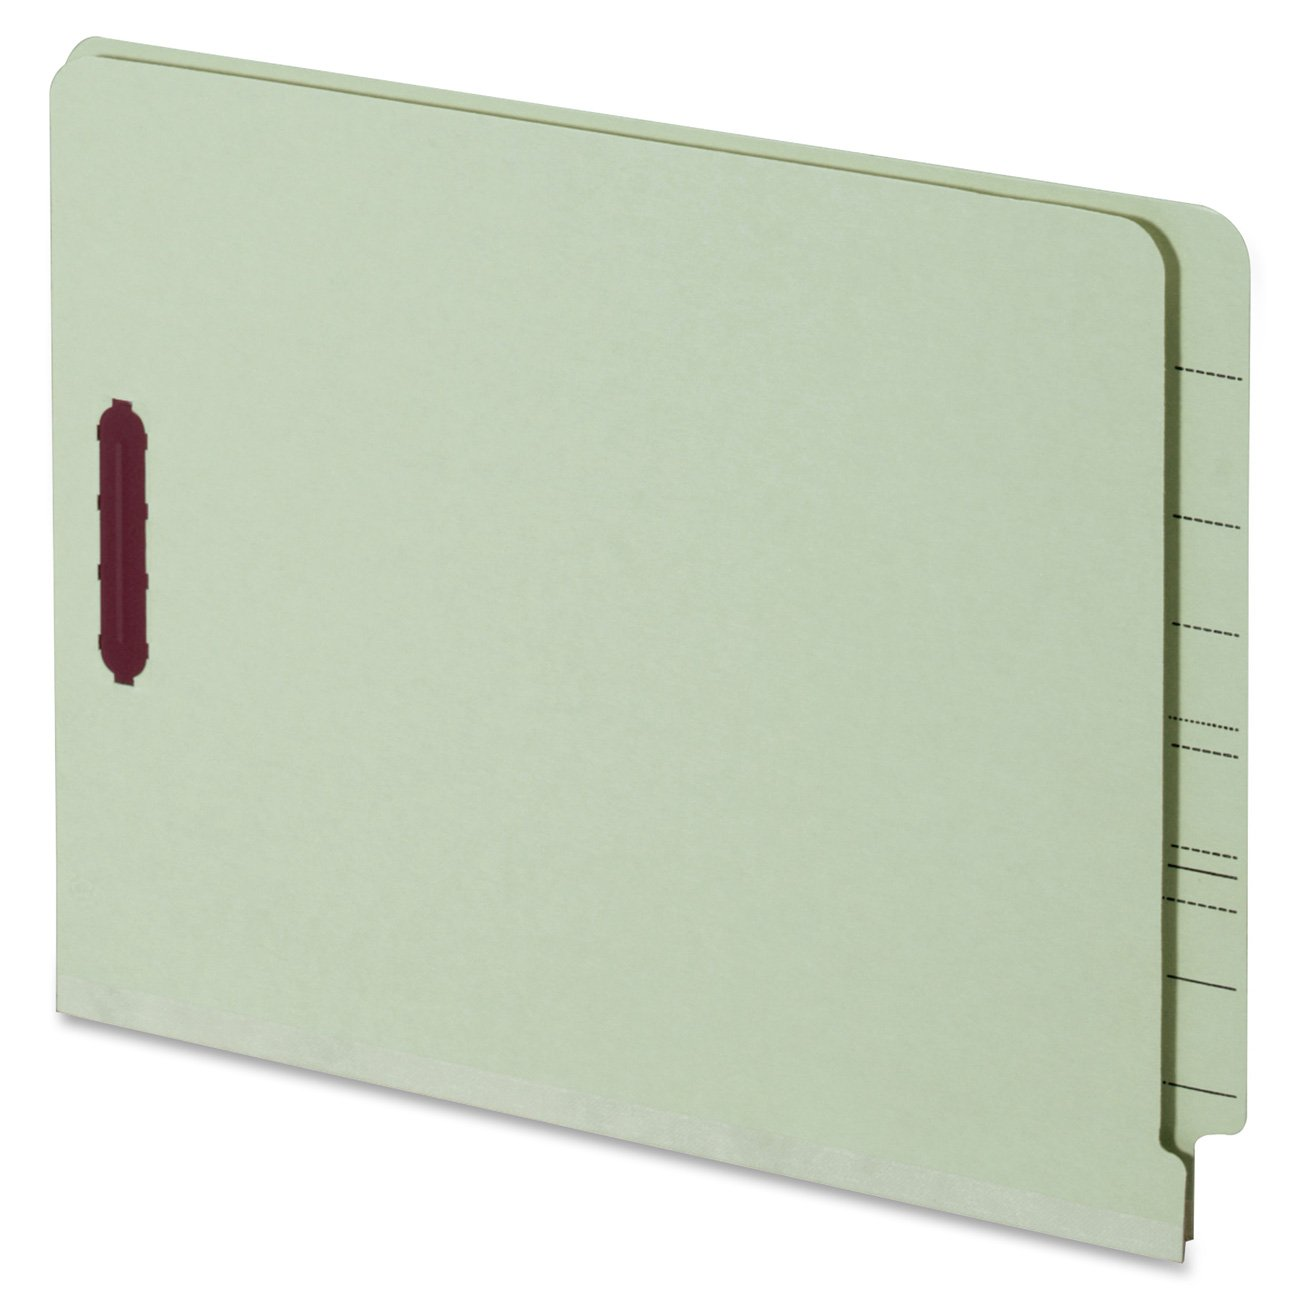 Globe-Weis End Tab Pressboard Fastener Folders, Letter Size, 1-Inch Expansion, Embedded Fasteners, Light Green, 25-Count (44705) PFX44705